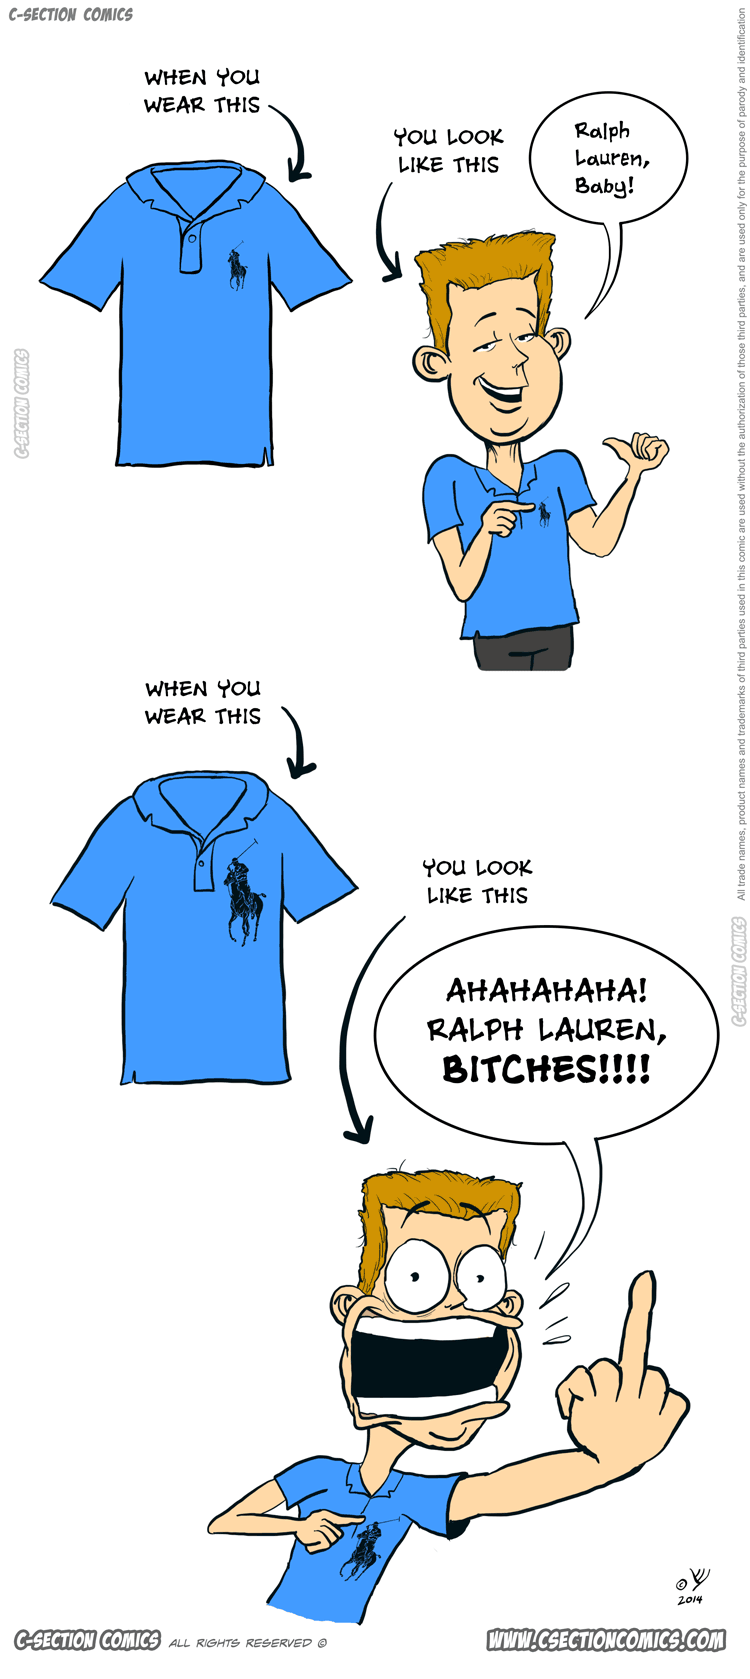 When You Wear Ralph Lauren - Fashion Cartoon by C-Section Comics